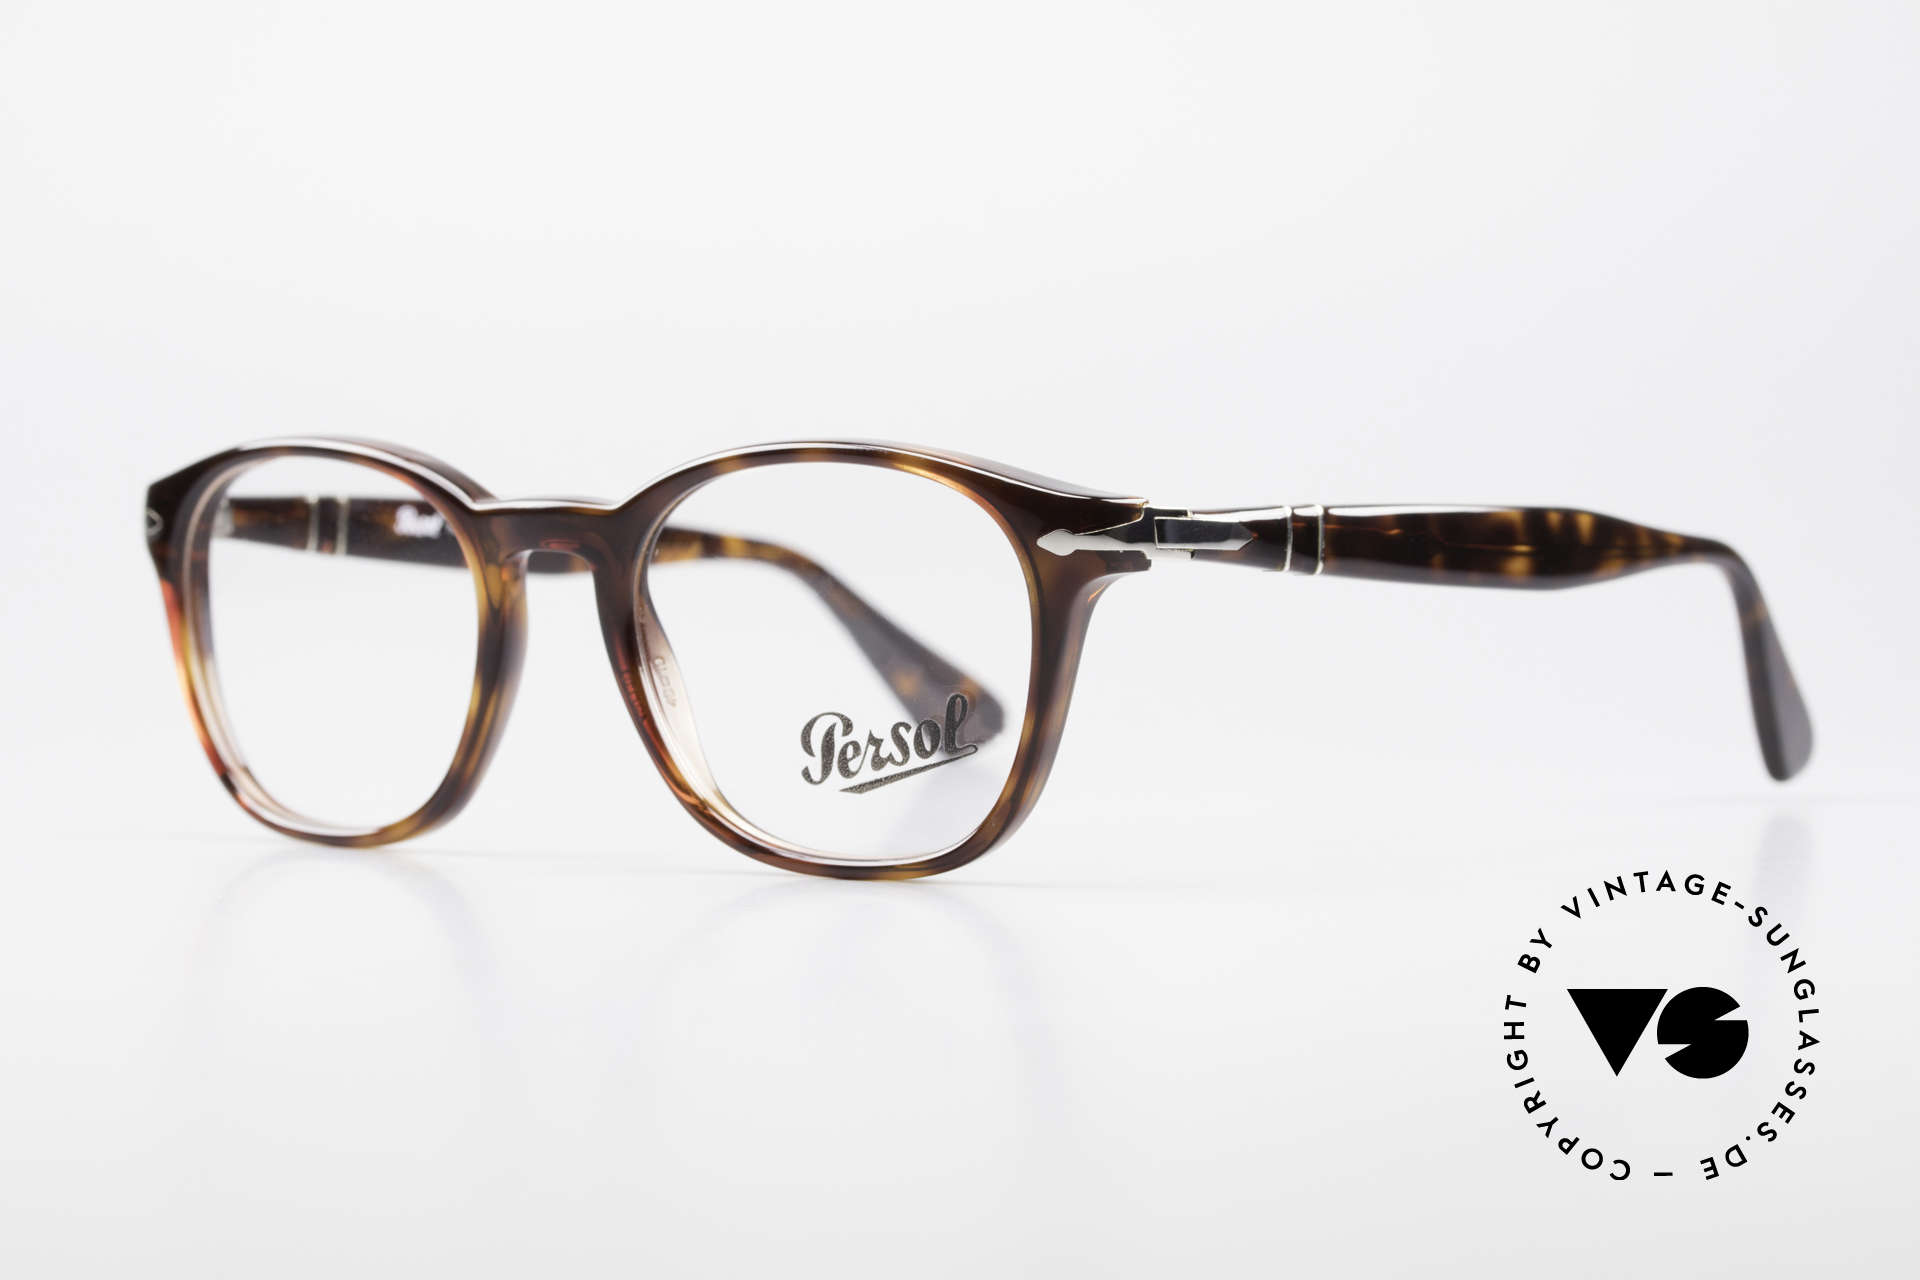 Persol 3122 Classic Square Panto Glasses, square Panto design & top-notch craftsmanship, Made for Men and Women